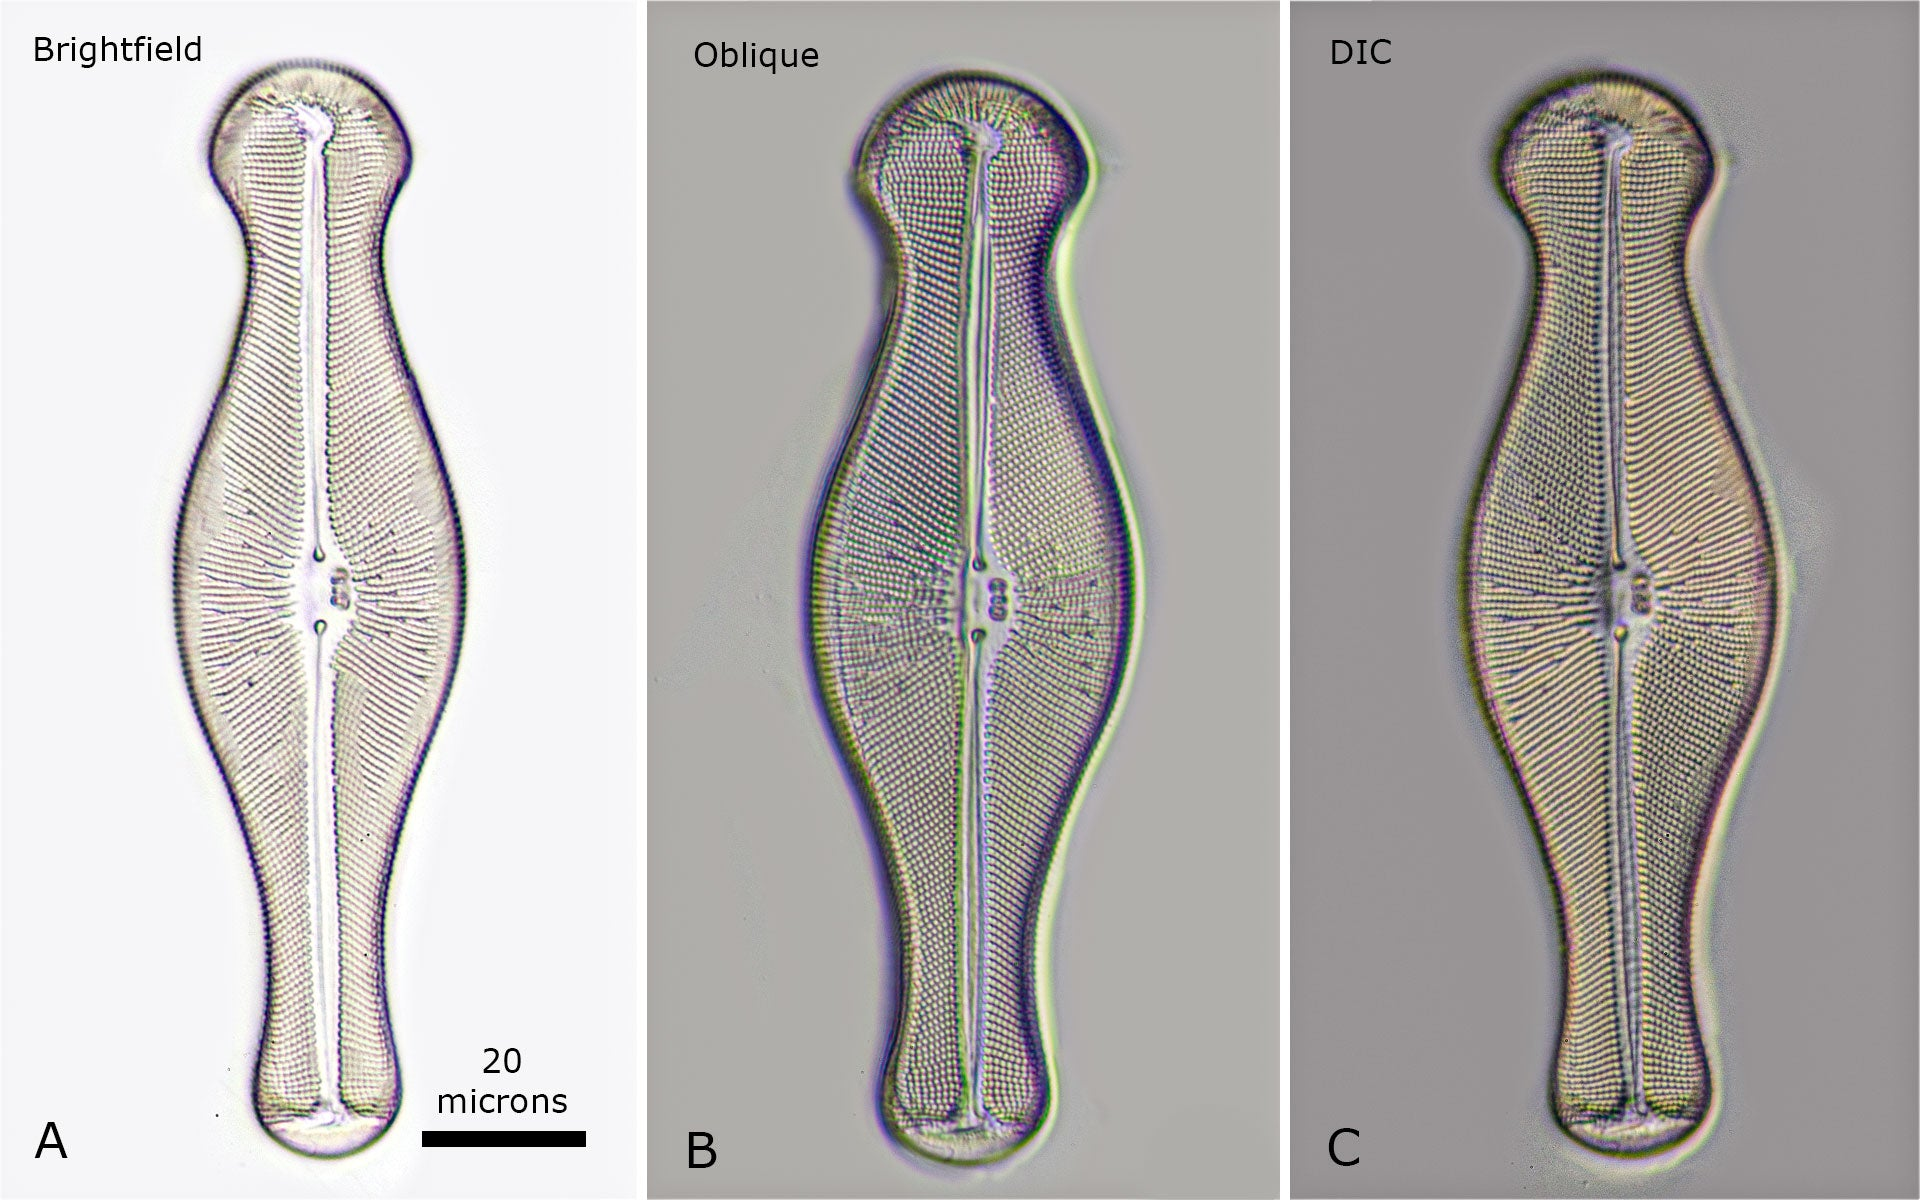 Diatom Gomphonema geminatum A) Brightfield microscopy B) Oblique lighting C) DIC microscopy. Each image is a focus stacks of 6 images to increase the depth of field.